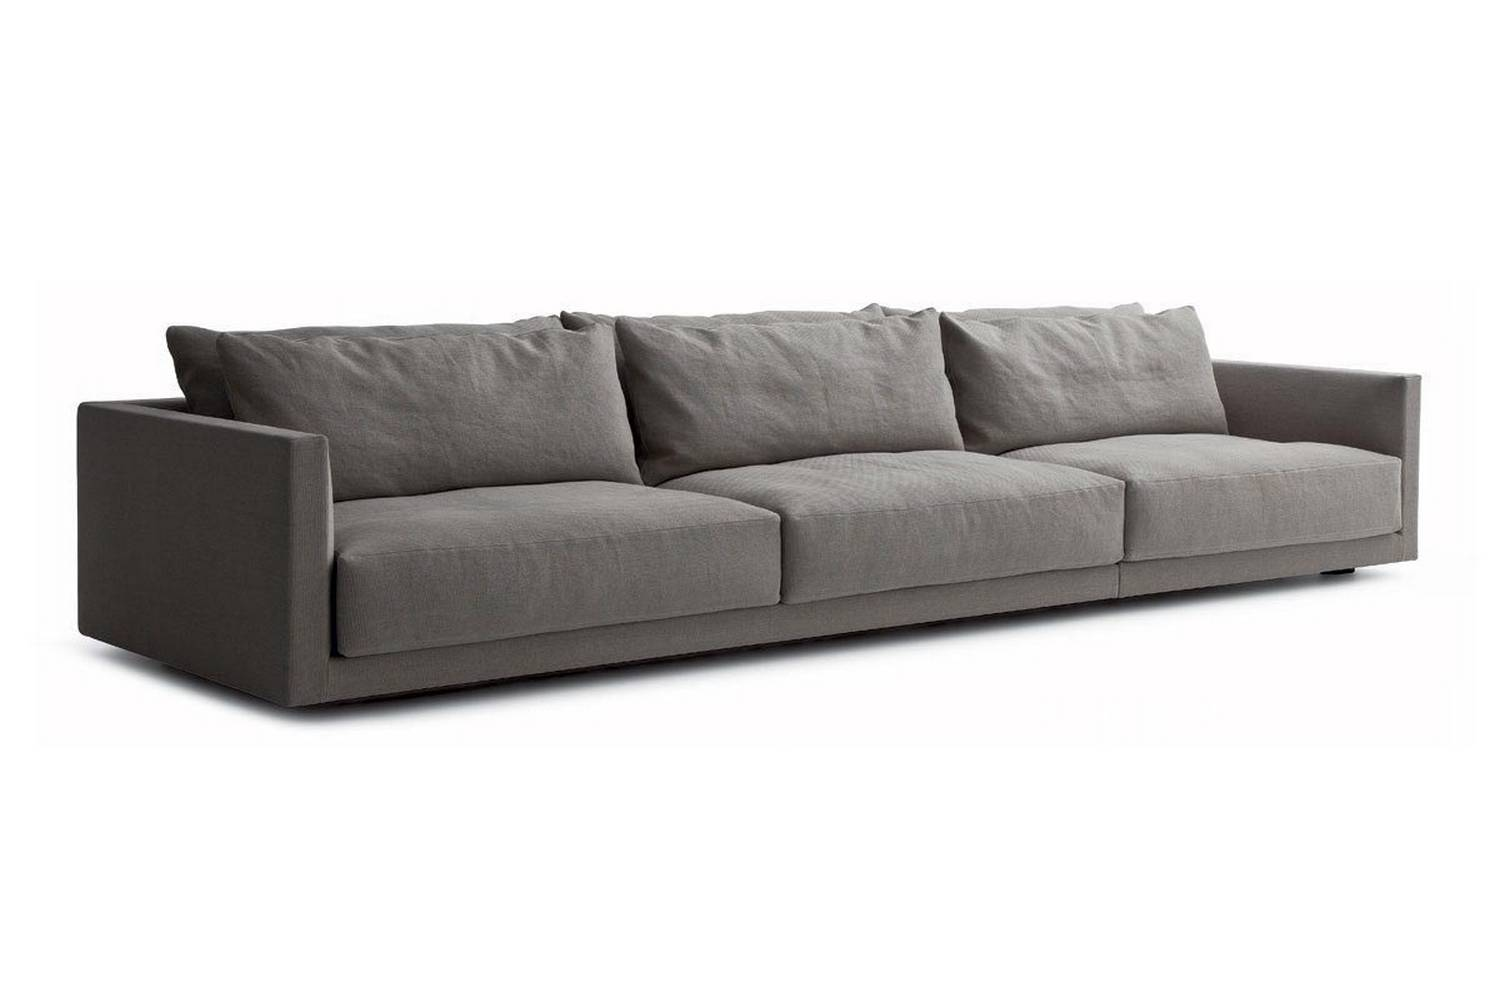 bristol sofa beds without arms by j m massaud for poliform